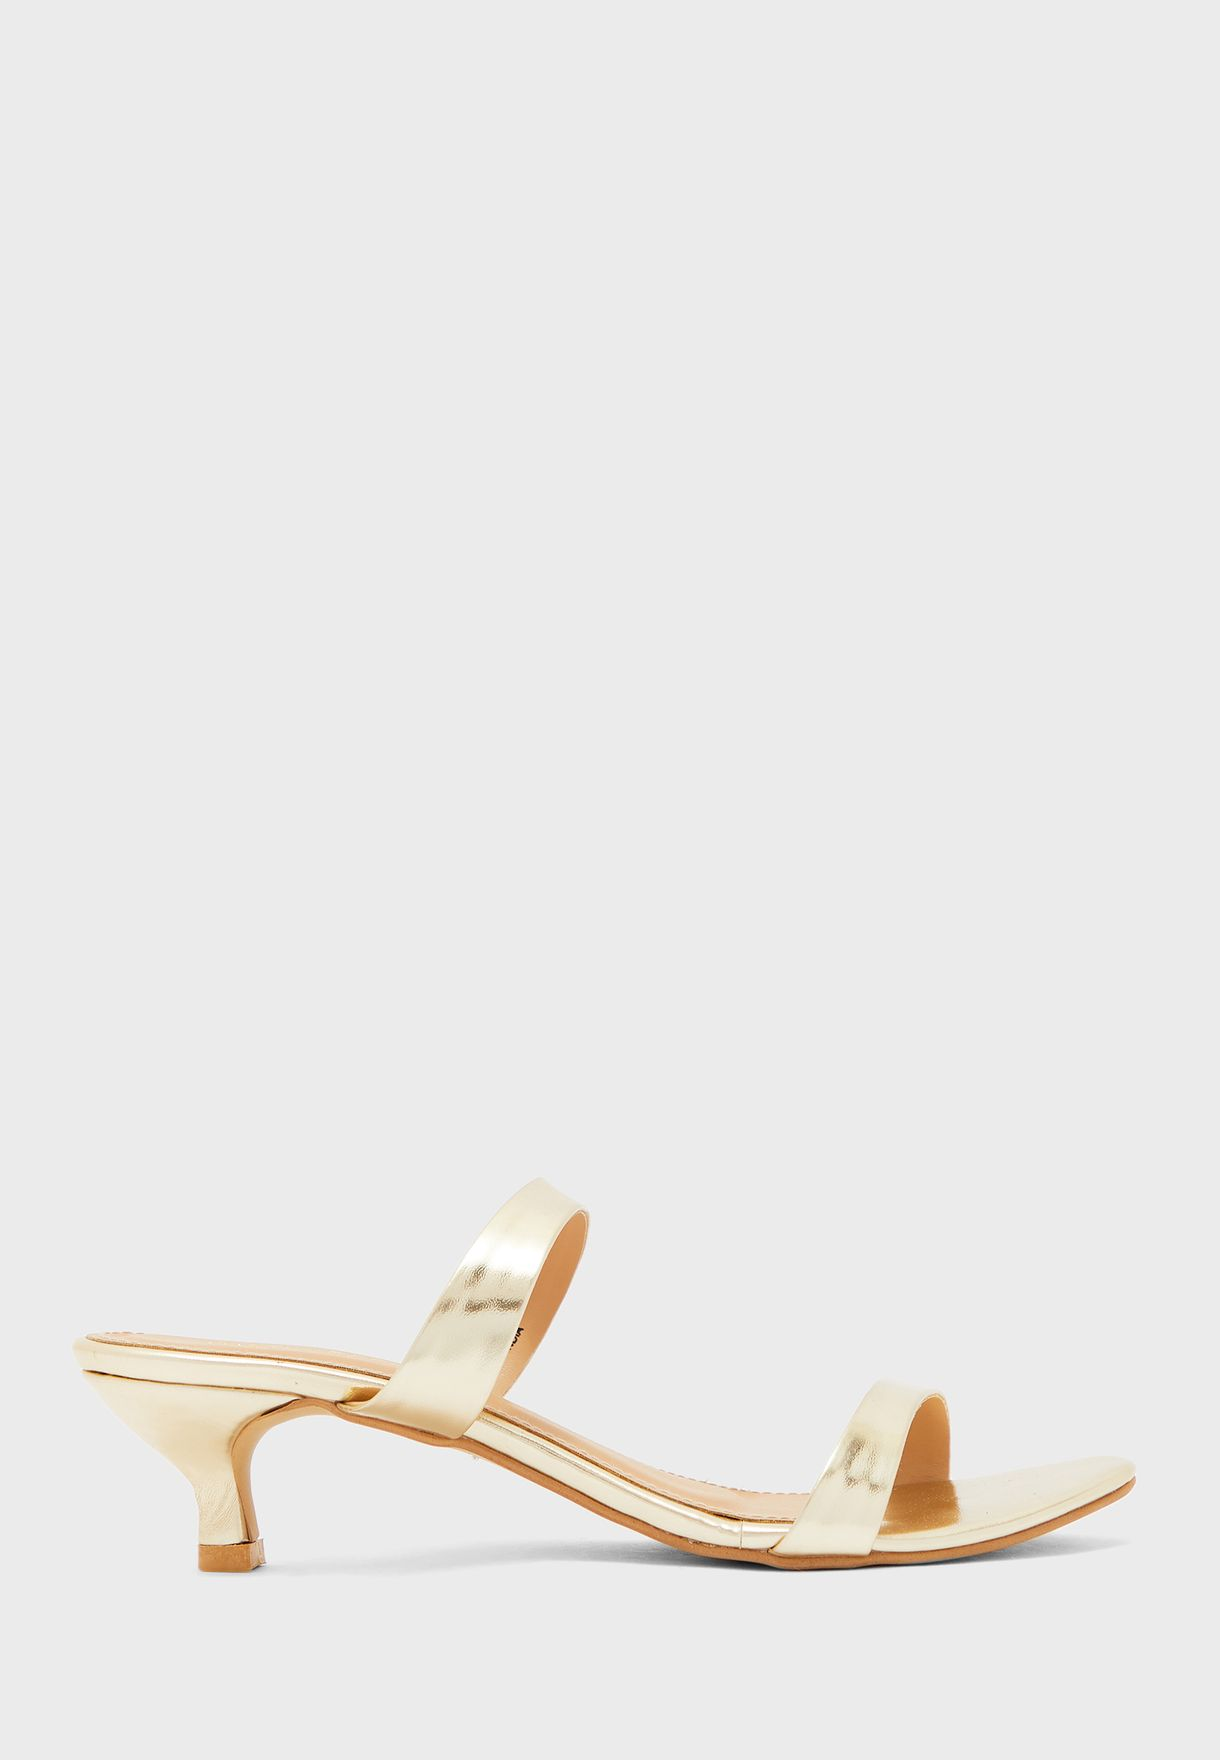 Buy Austin Reed Gold Double Strap Mid Heel Sandal For Women In Mena Worldwide Aullhs37dff